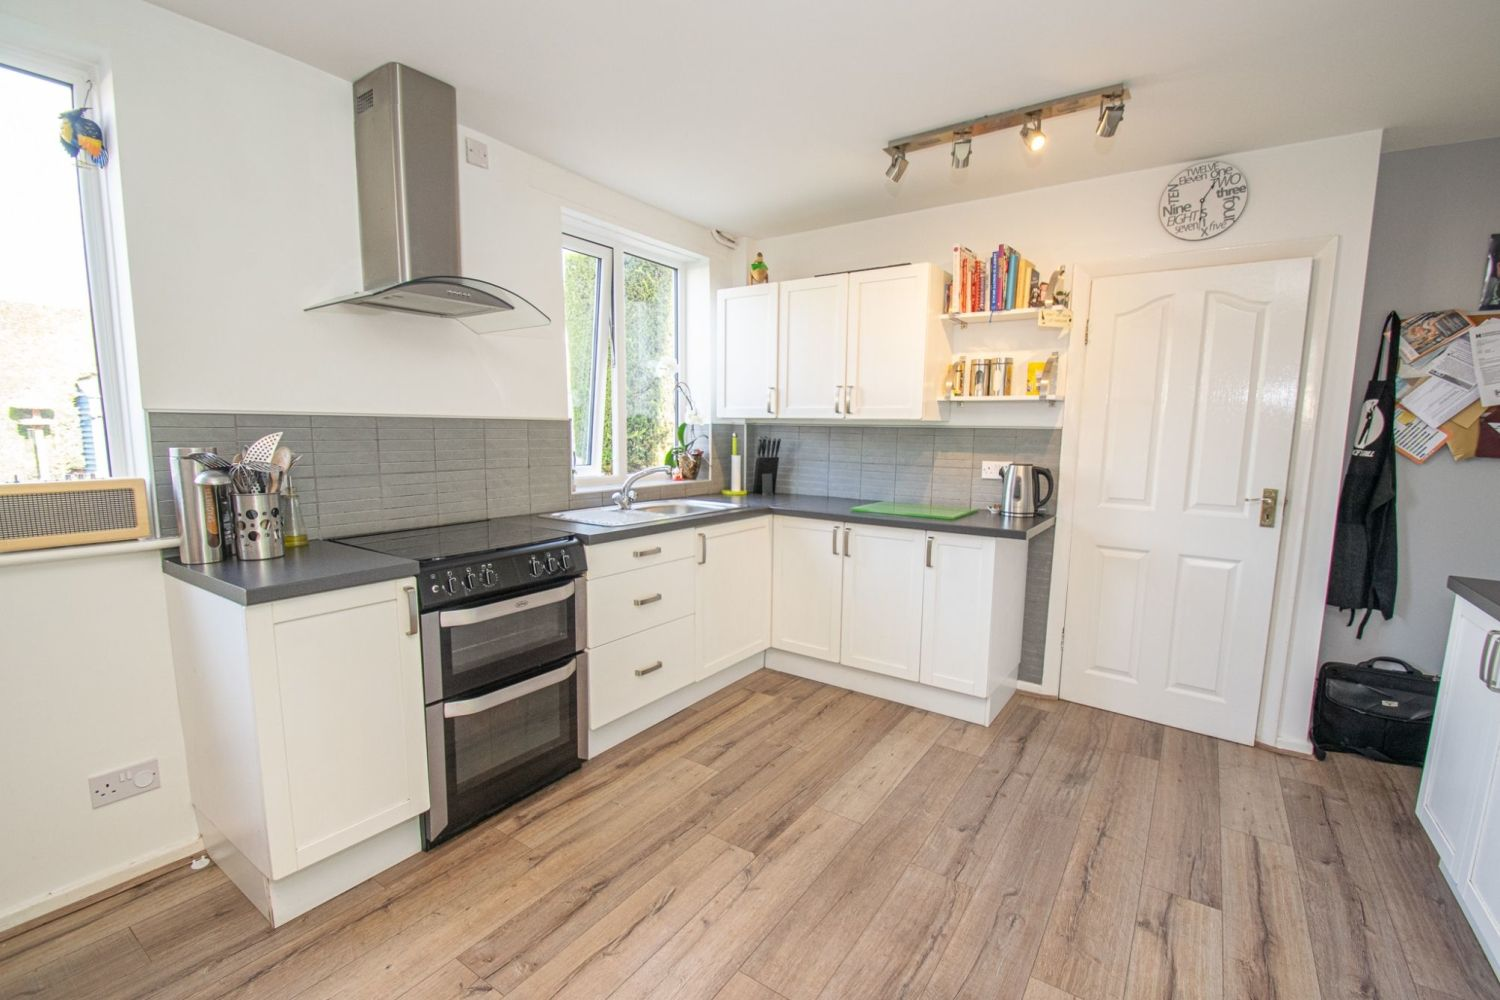 3 bed semi-detached for sale in Dobbins Oak Road, Wollescote  - Property Image 2